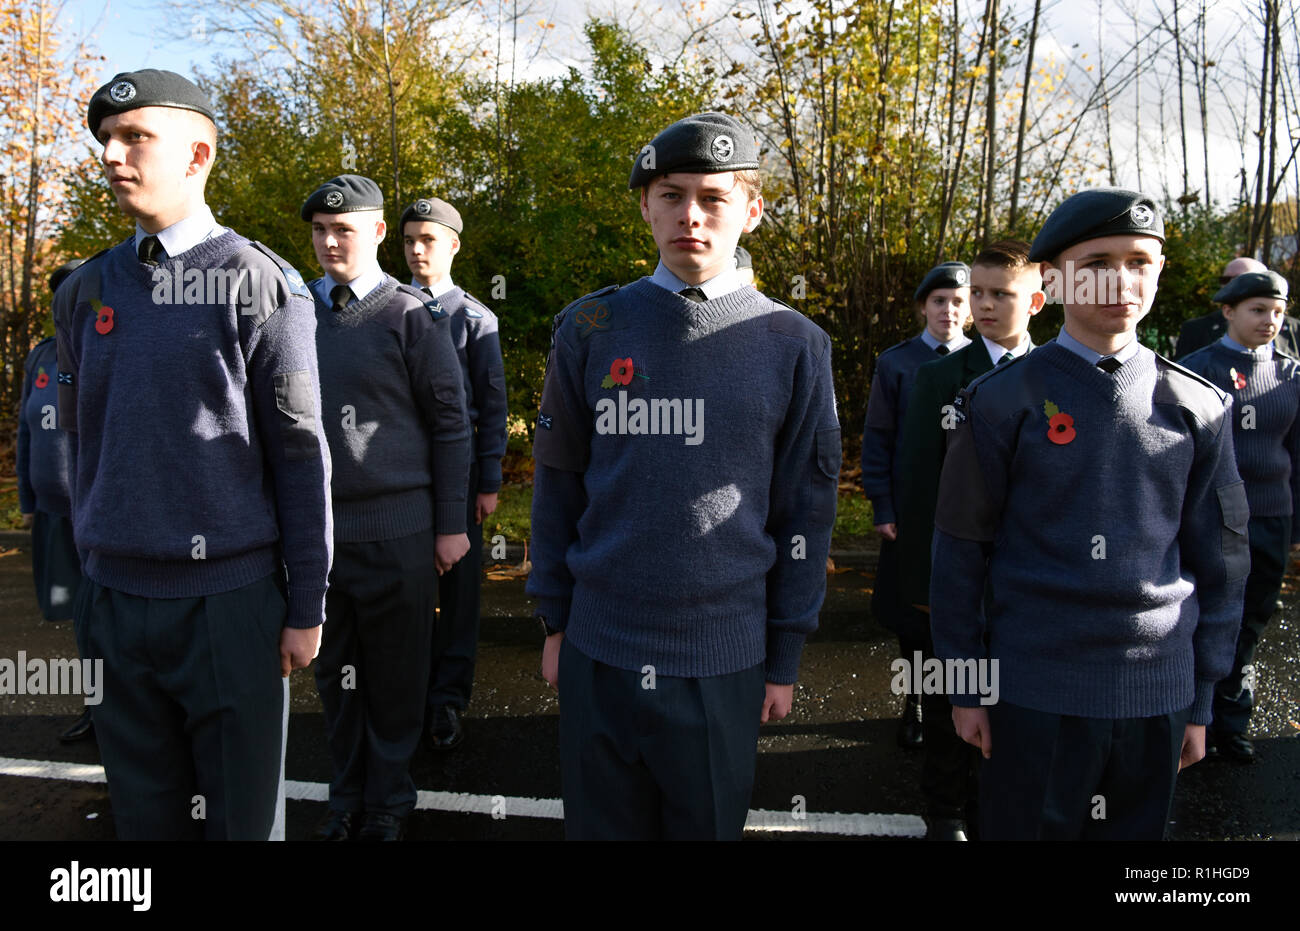 Air Training Corps on parade during Remembrance Sunday, War Memorial, Bordon, Hampshire, UK. 11.11.2018. - Stock Image